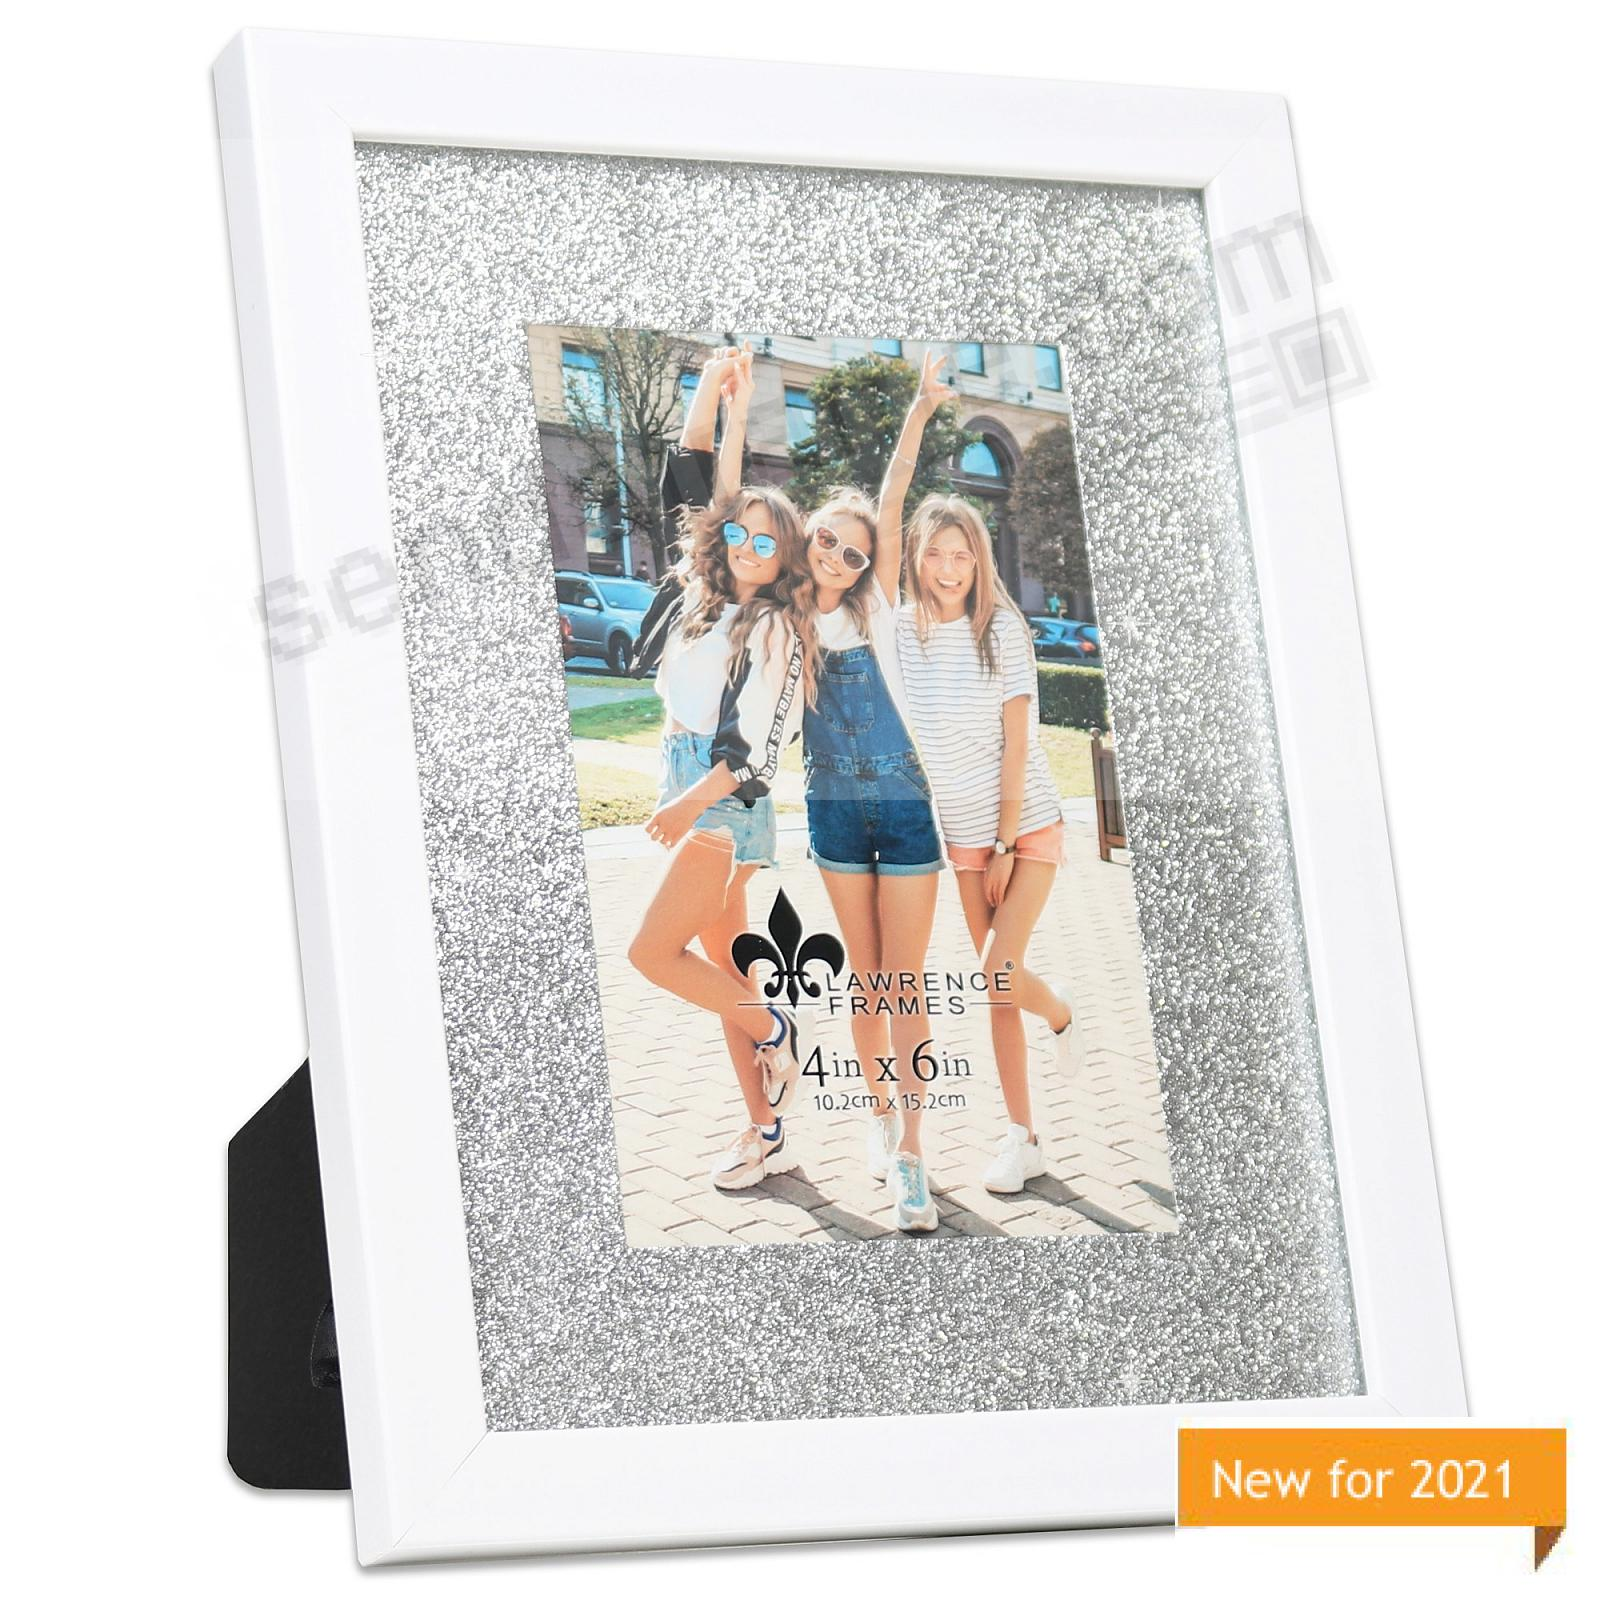 Satin-White matted 6x8/4x6 frame with Silver Glitter Mat by Lawrence Frames®